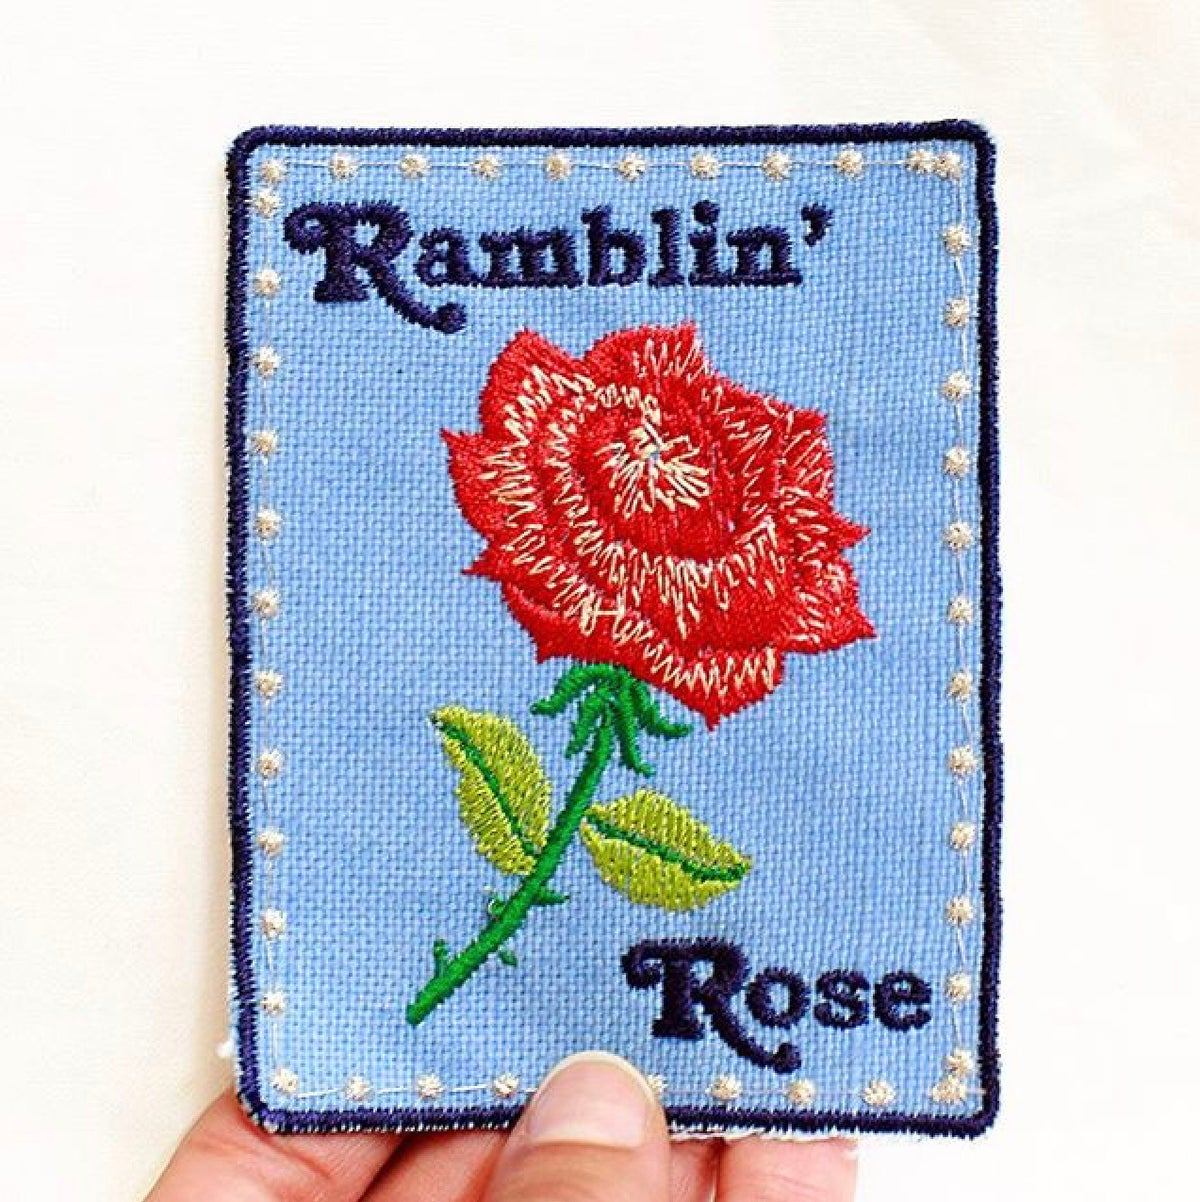 Ramblin' Rose Handmade Patch! 3x4